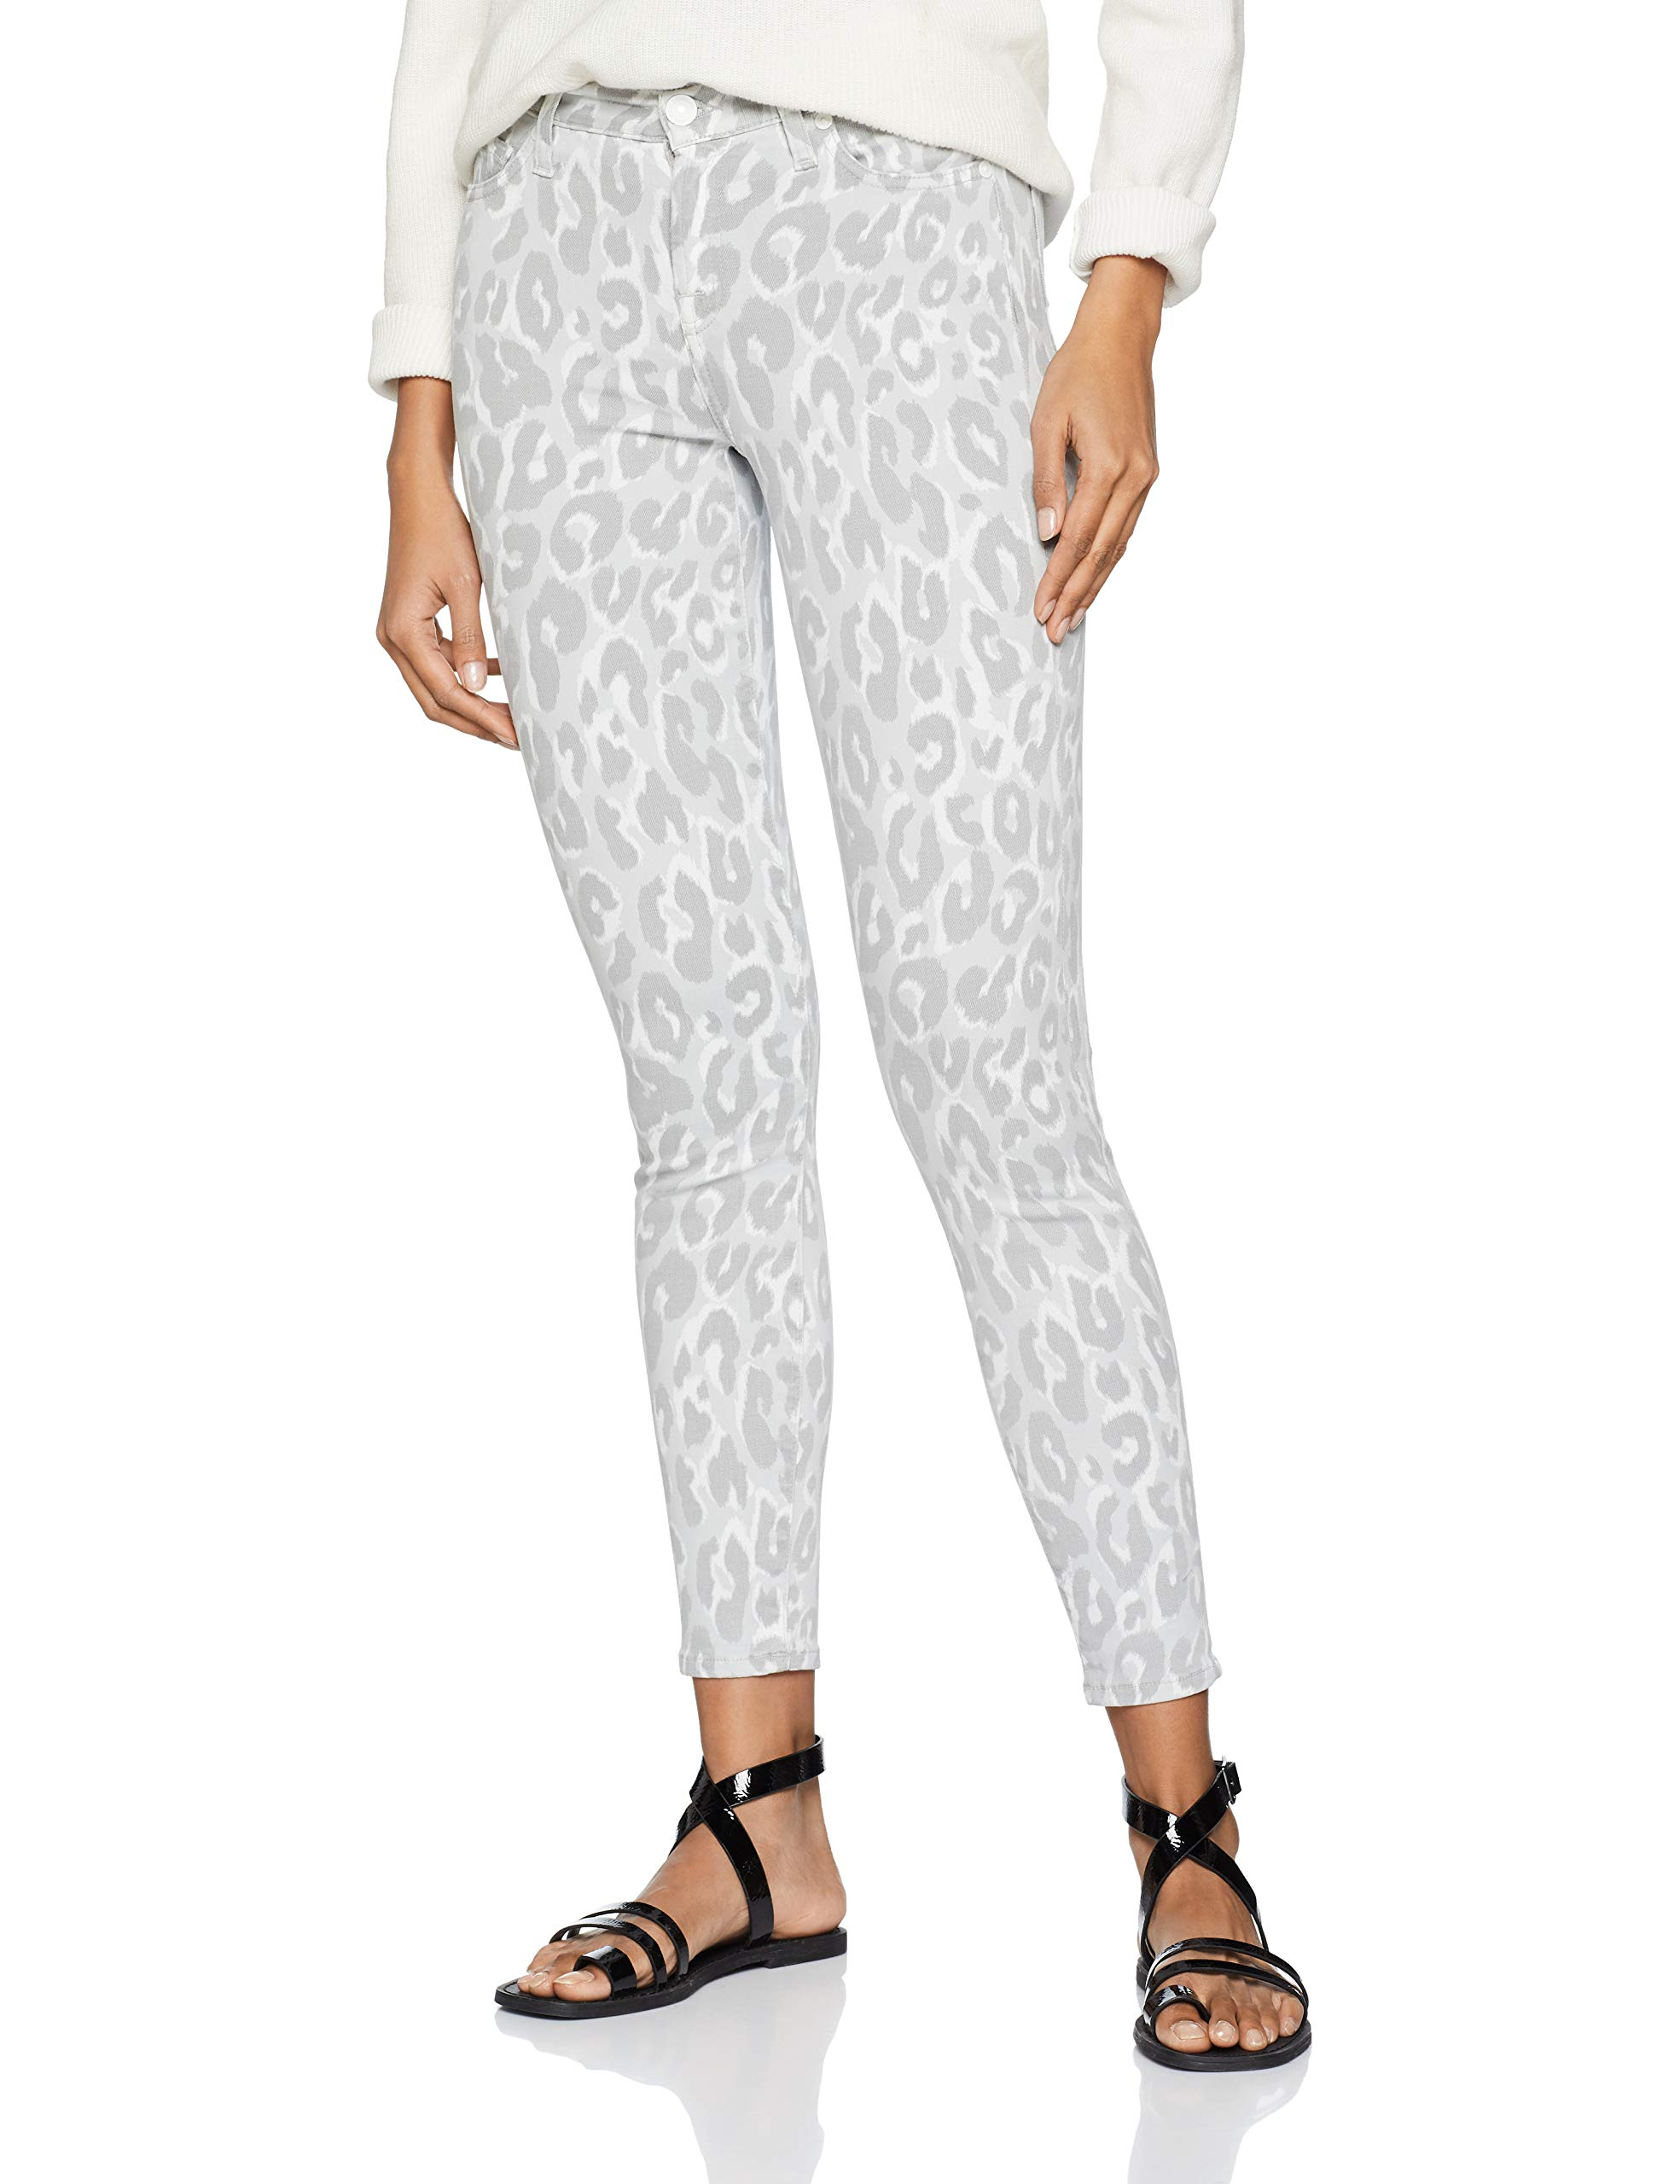 Seven Sagl For Mankind Print 0mgtaille All The FemmeMulticoloreléopard CropJean International Fabricant29 Skinny mONwnyv8P0